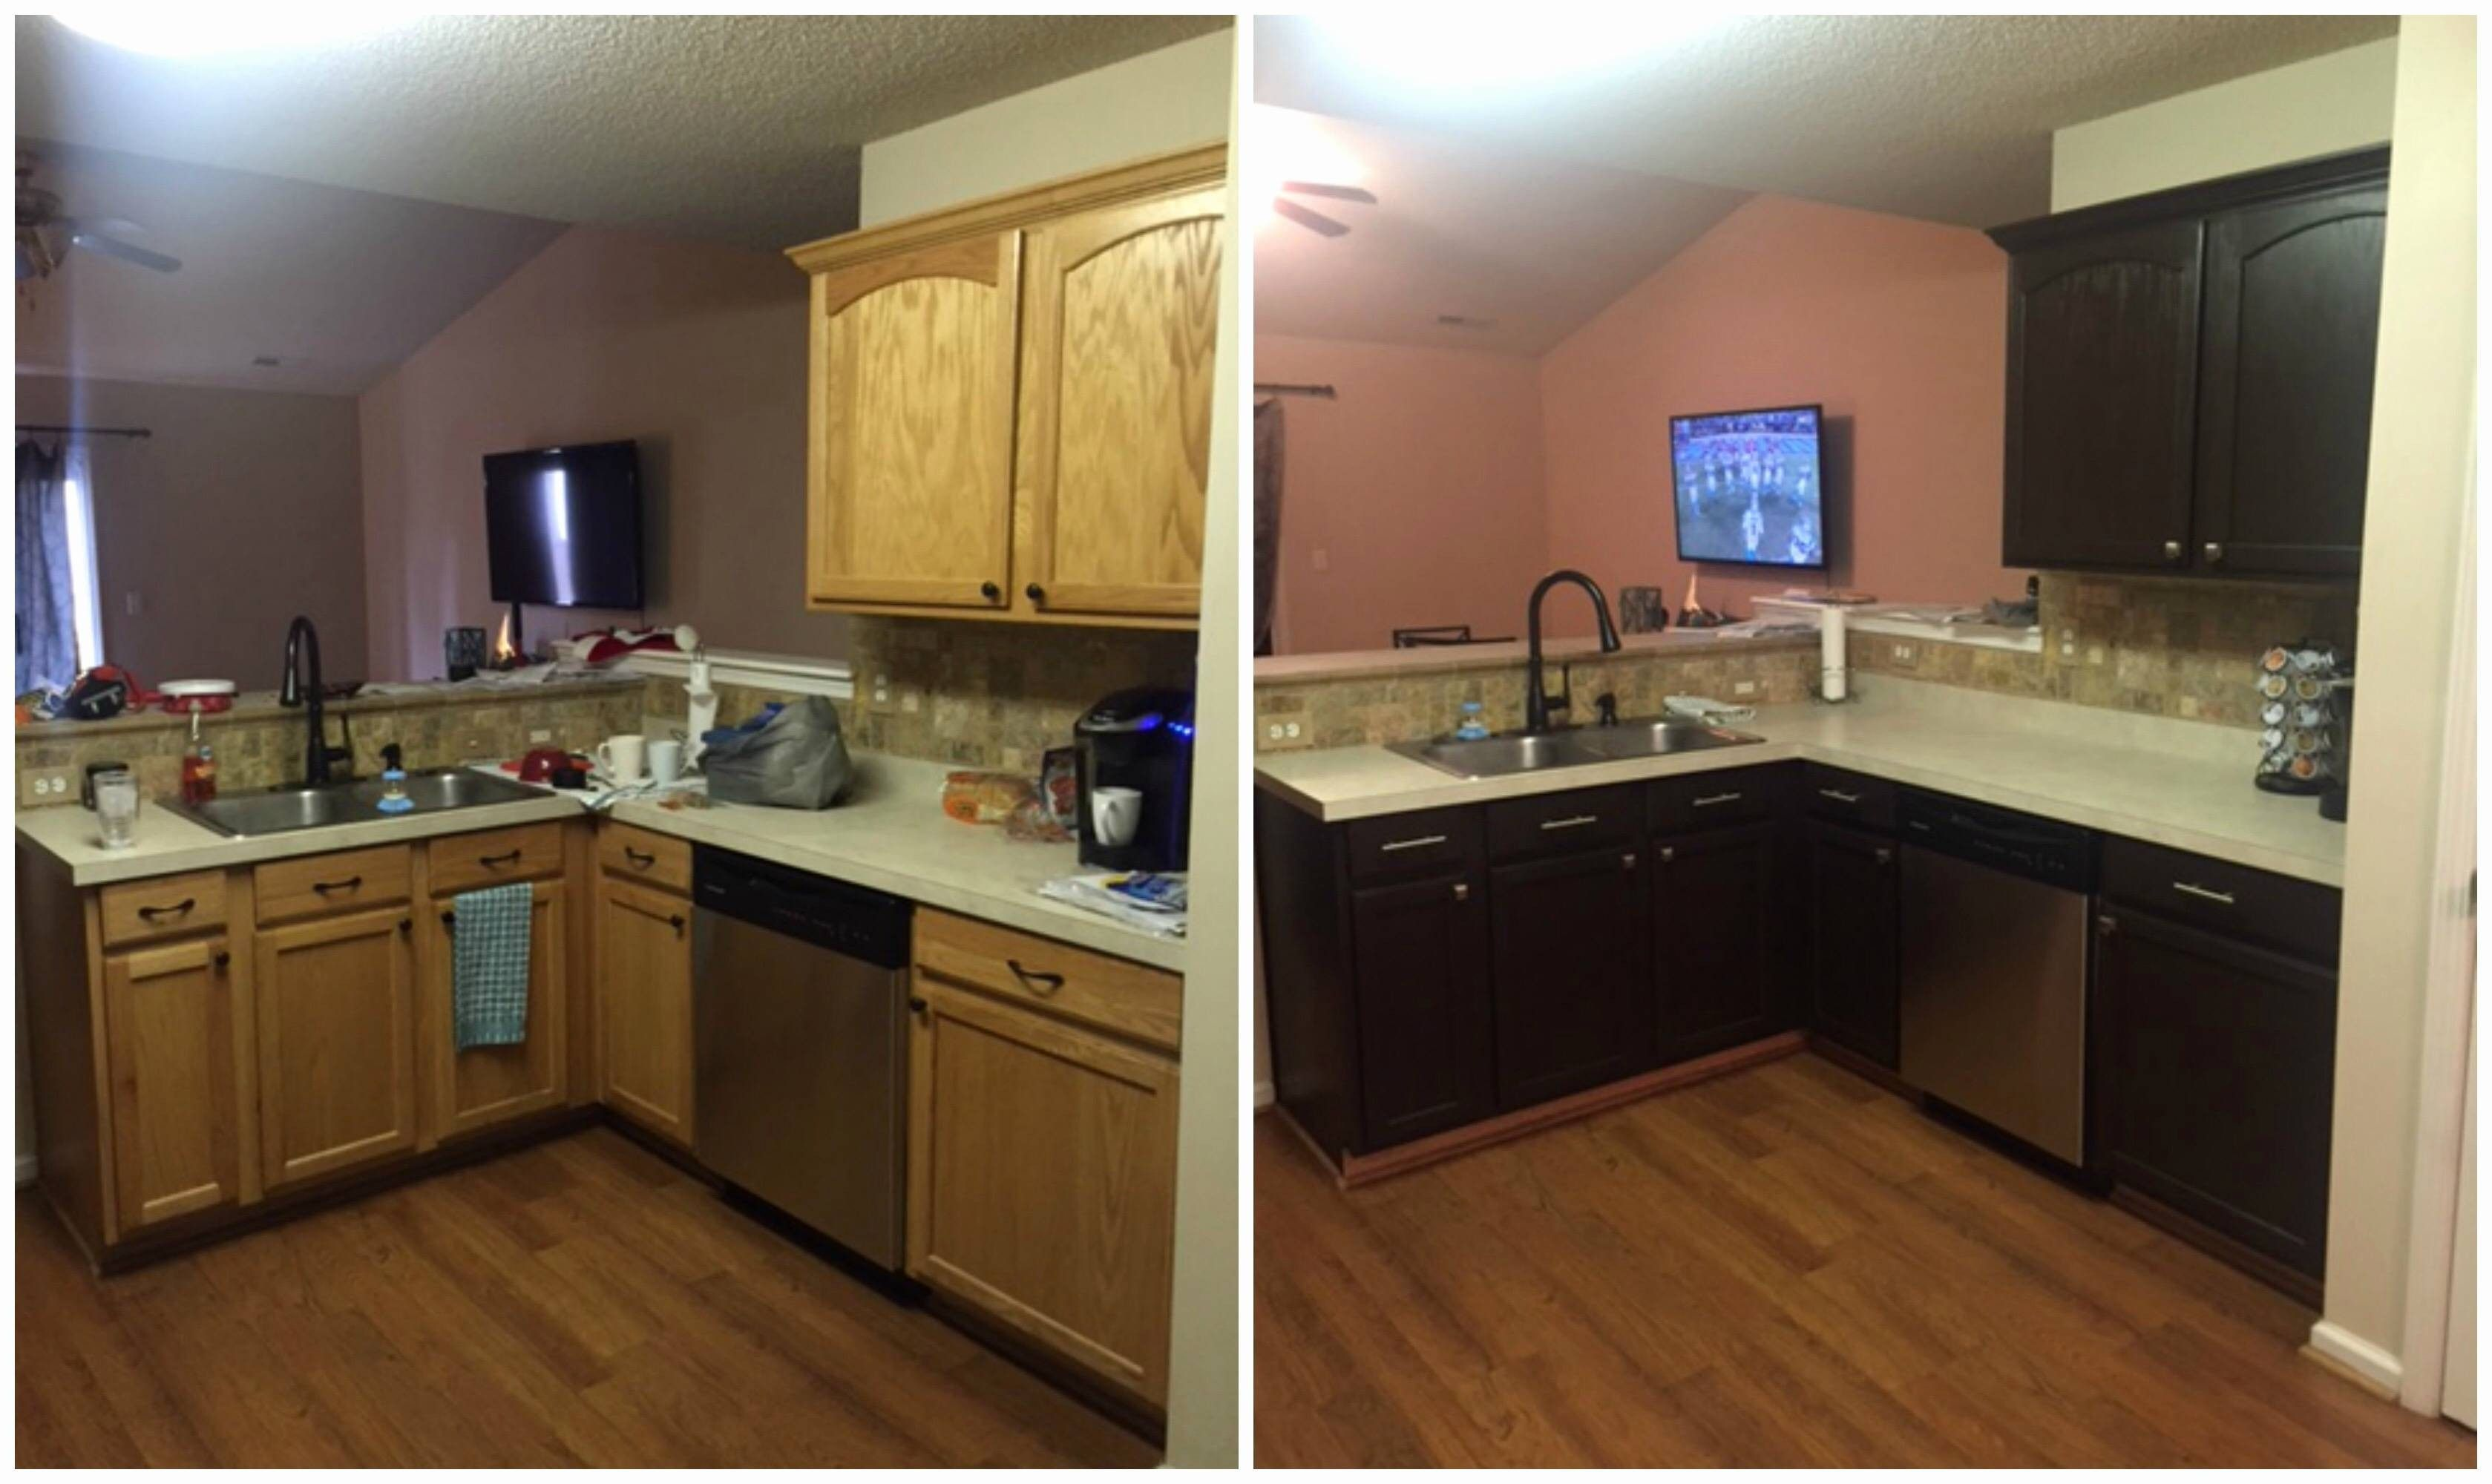 Inspirational Painting Kitchen Cabinets Before And After The Most Amazing In Addition To Stunning Painting Kitchen Cabinets Before And After With Regard To E